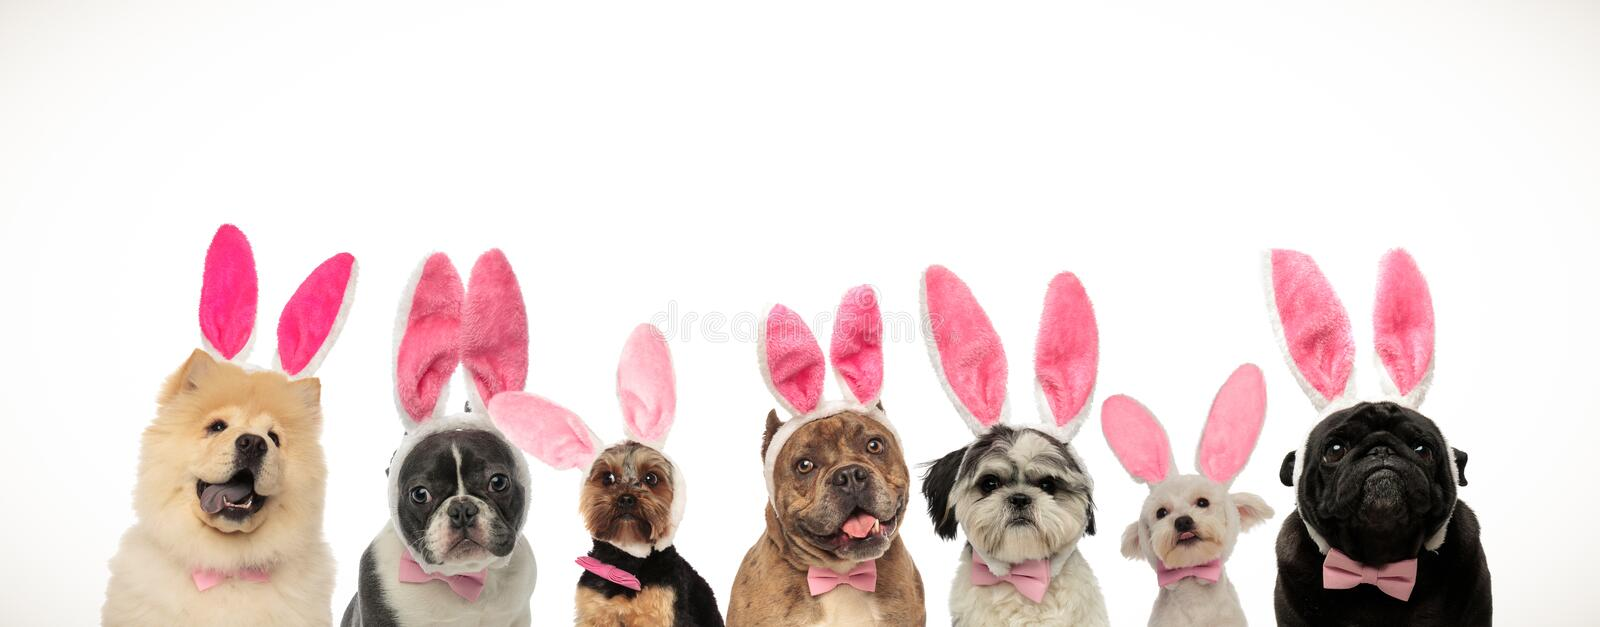 Many cute easter dogs wearing pink rabbit ears royalty free stock photo